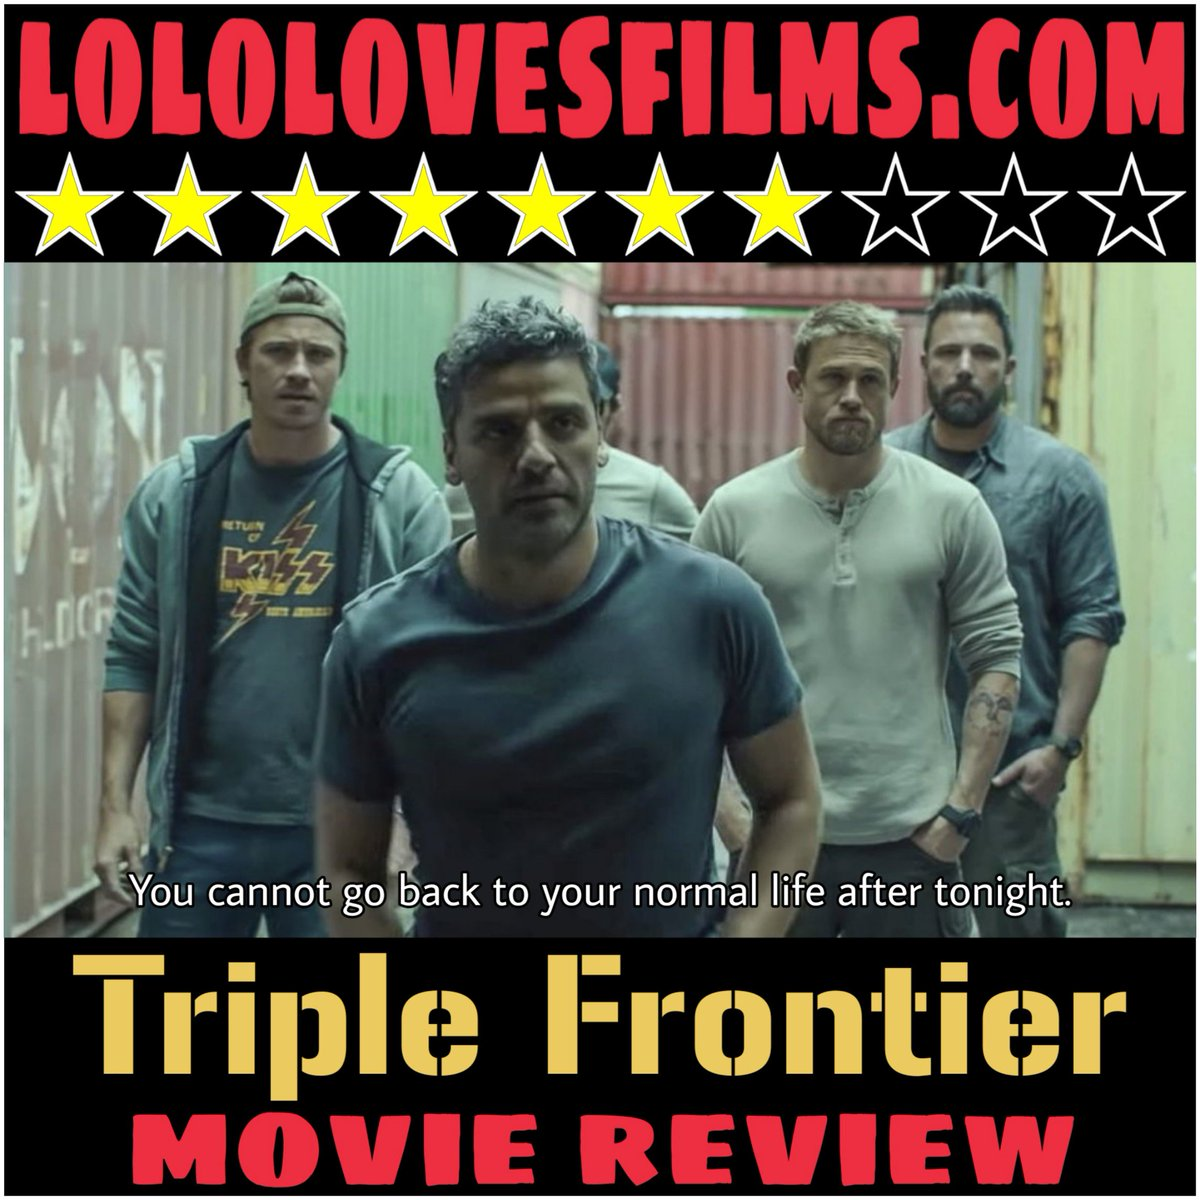 #MOVIE #REVIEW: #Netflix's #TripleFrontier (2019) might be a little uneven in terms of its pacing, but it's enthralling and gritty enough to keep you interested from start to finish. http://bit.ly/LoloTRIPLEFRONTIER …  #netflixandchill #movies #moviereview #oscarisaac #benaffleck